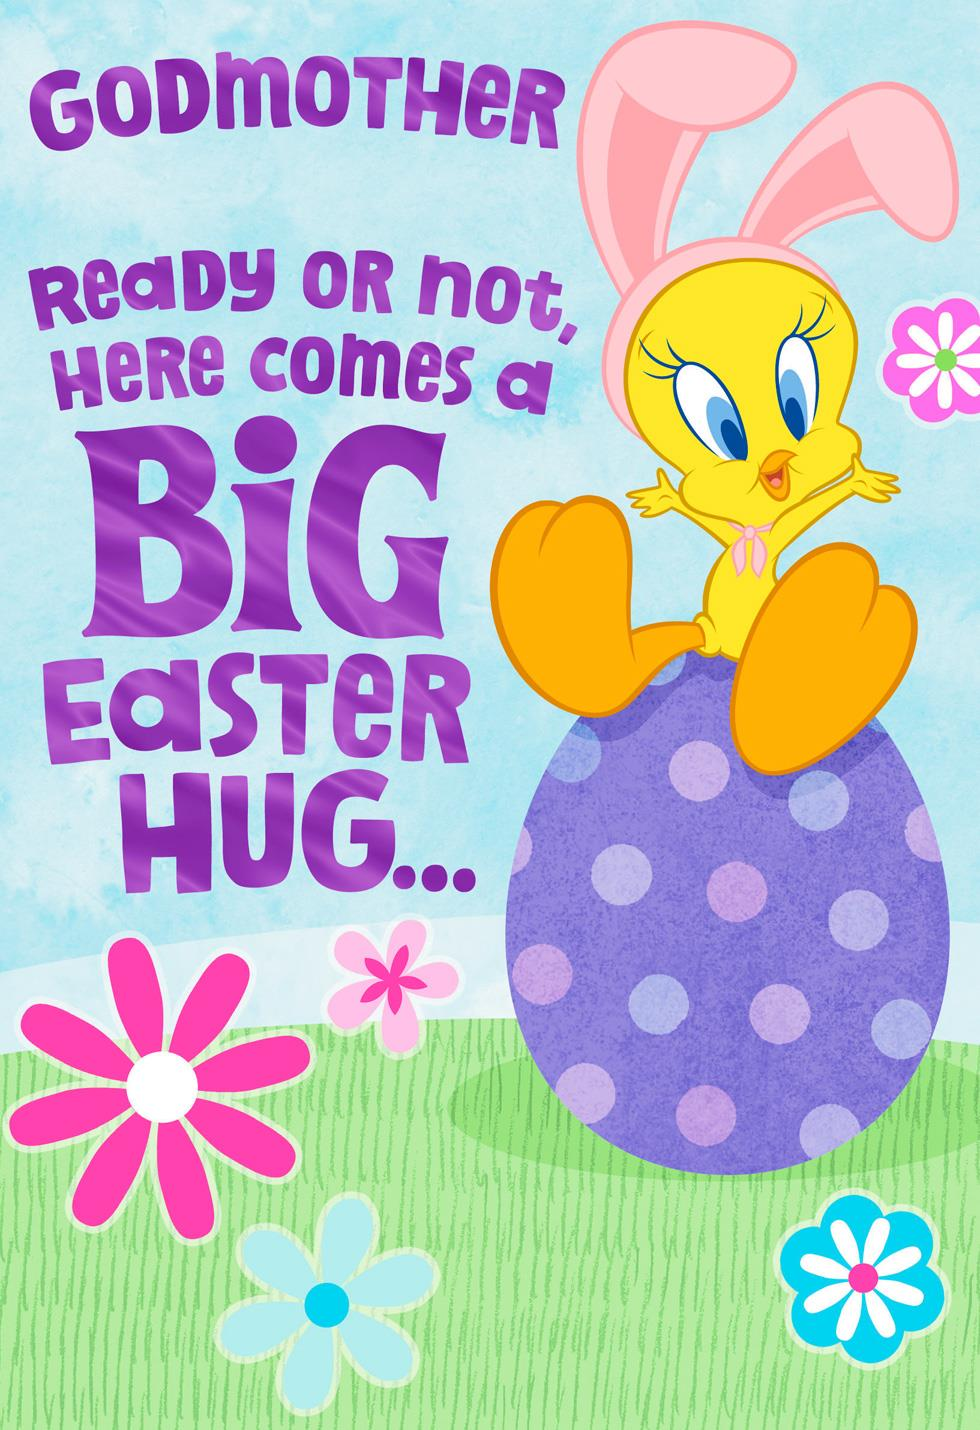 Hugs From Tweety Easter Card For Godmother Greeting